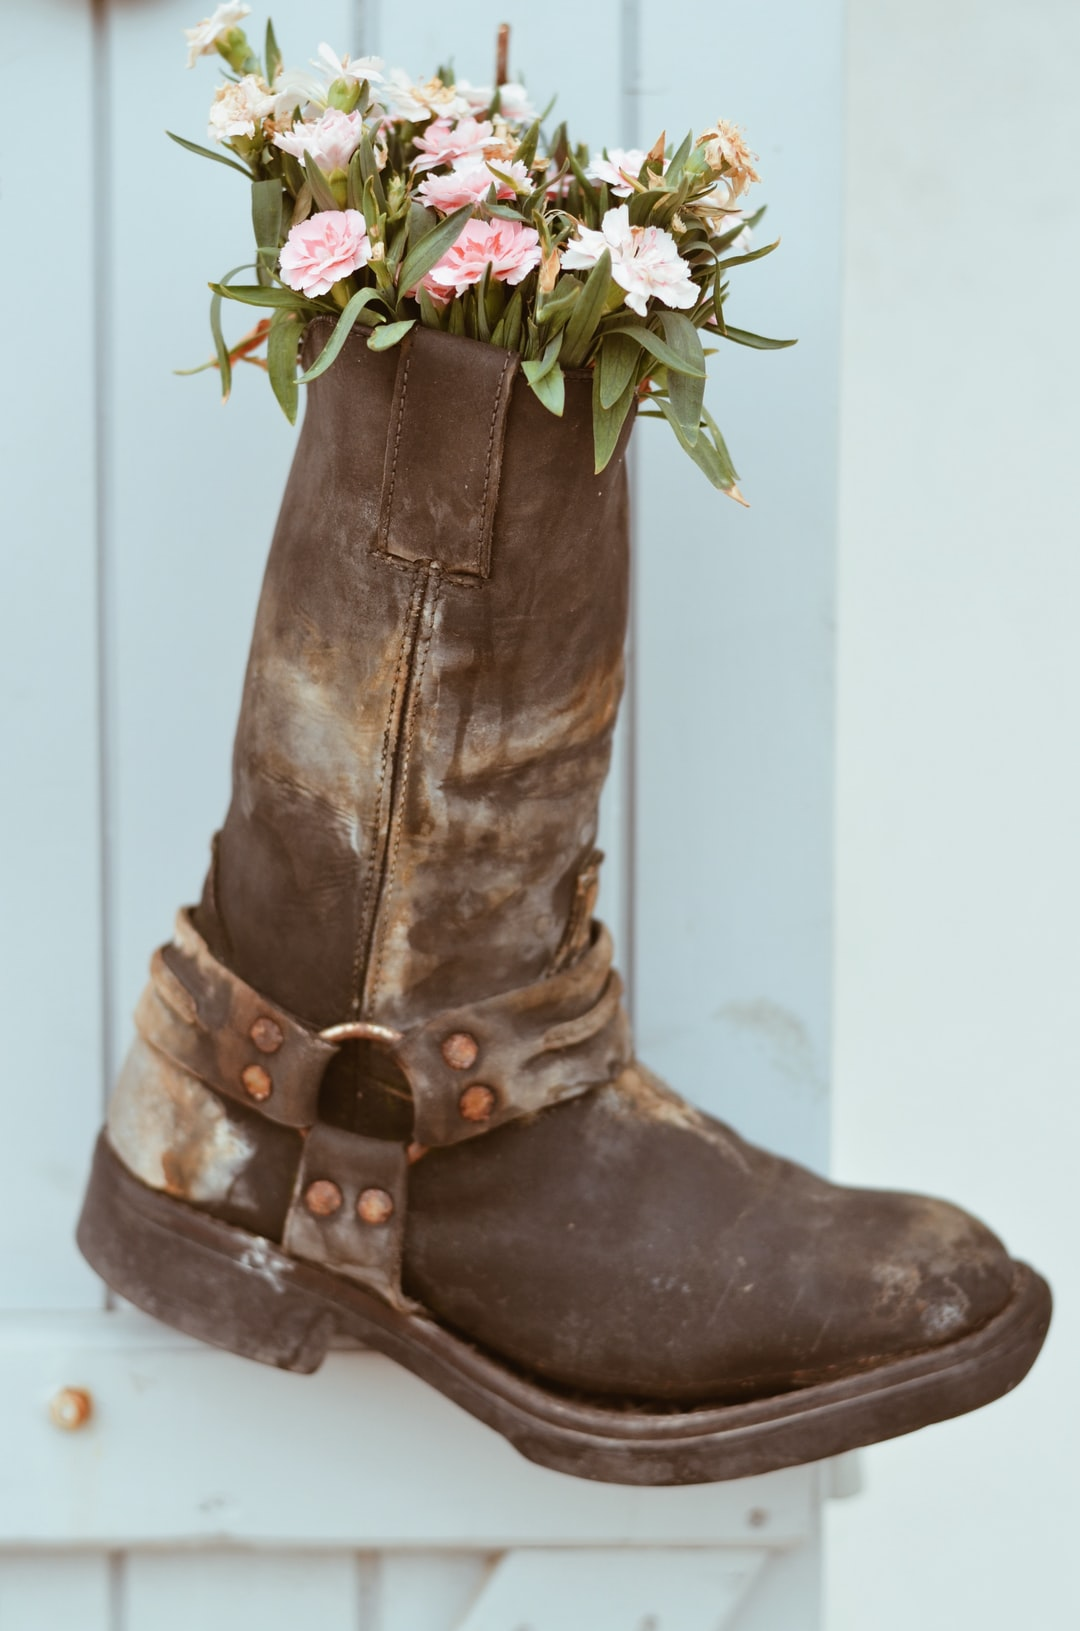 Wild boot with flowers